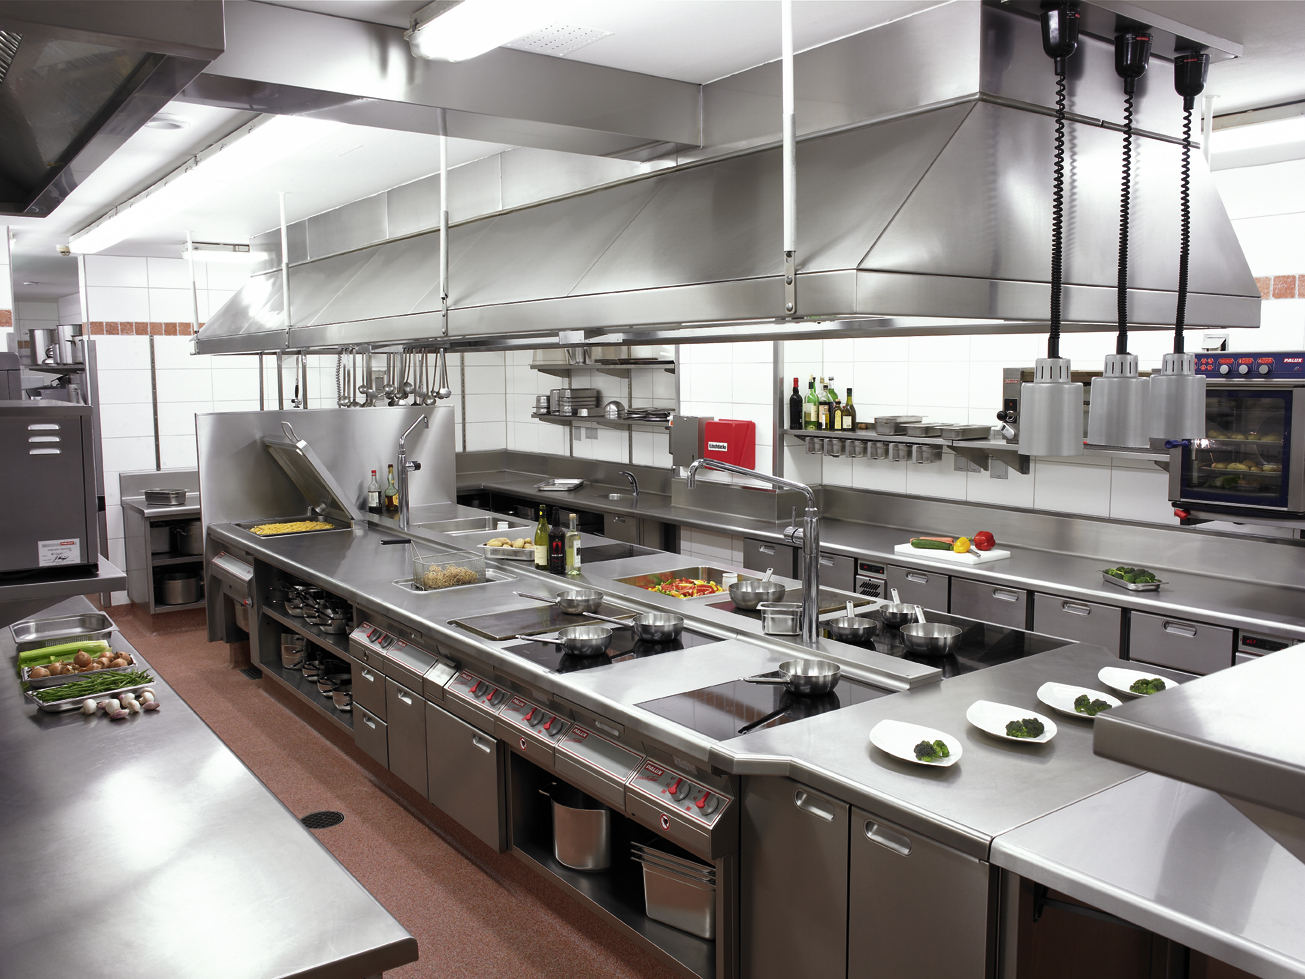 commercial kitchens modern kitchen pulls rent the for easy startup of food business expert home improvement advice by philip barron